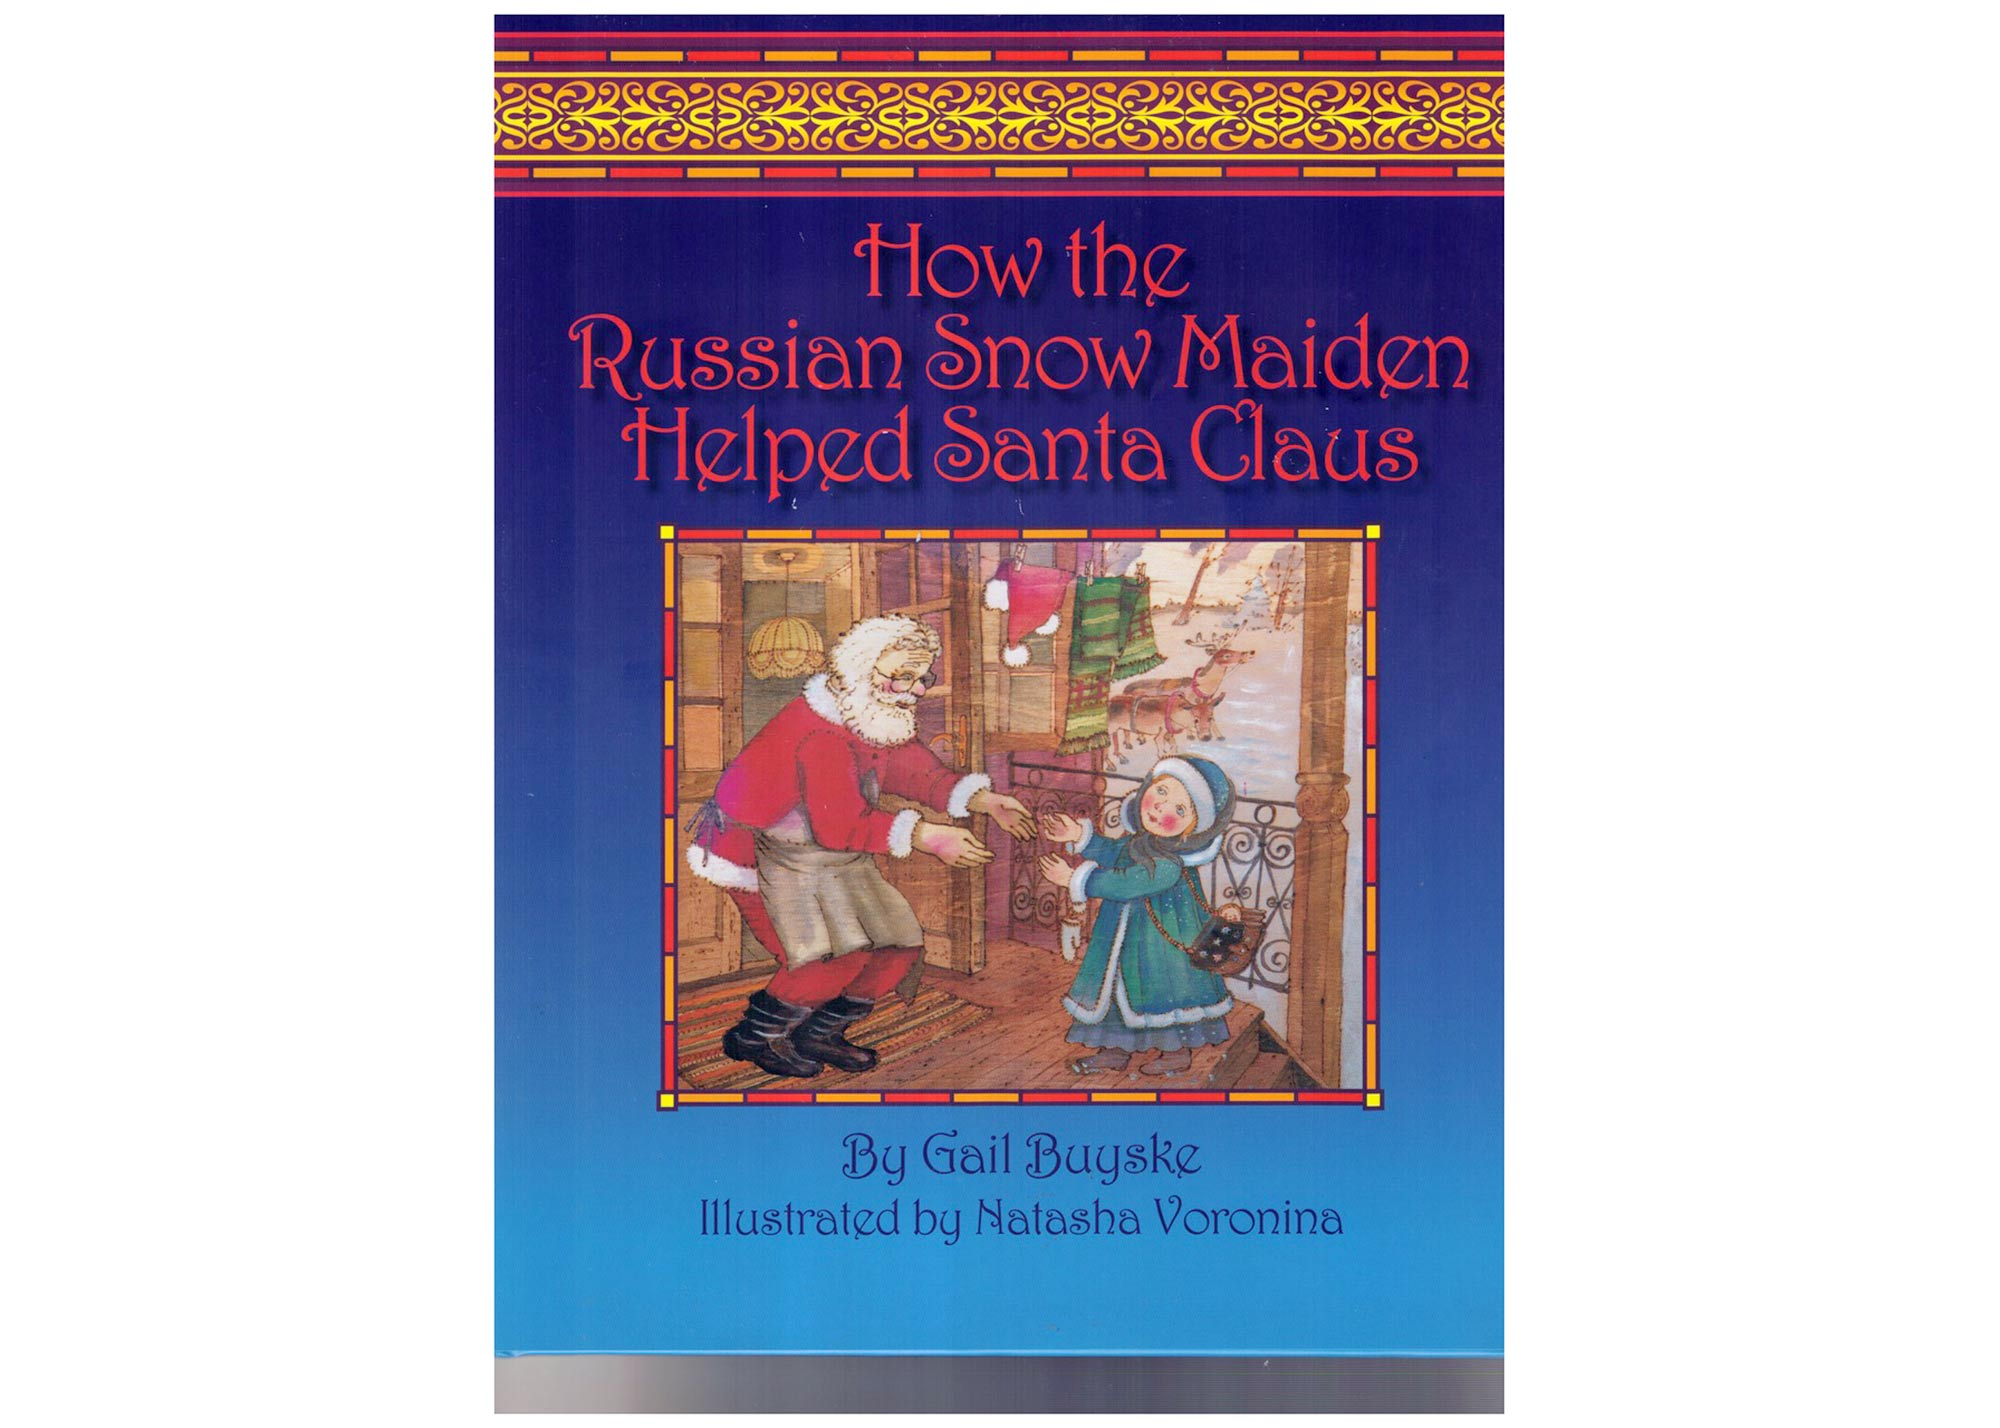 Buy How the Russian Snow Maiden Helped Santa Claus at GoldenCockerel.com